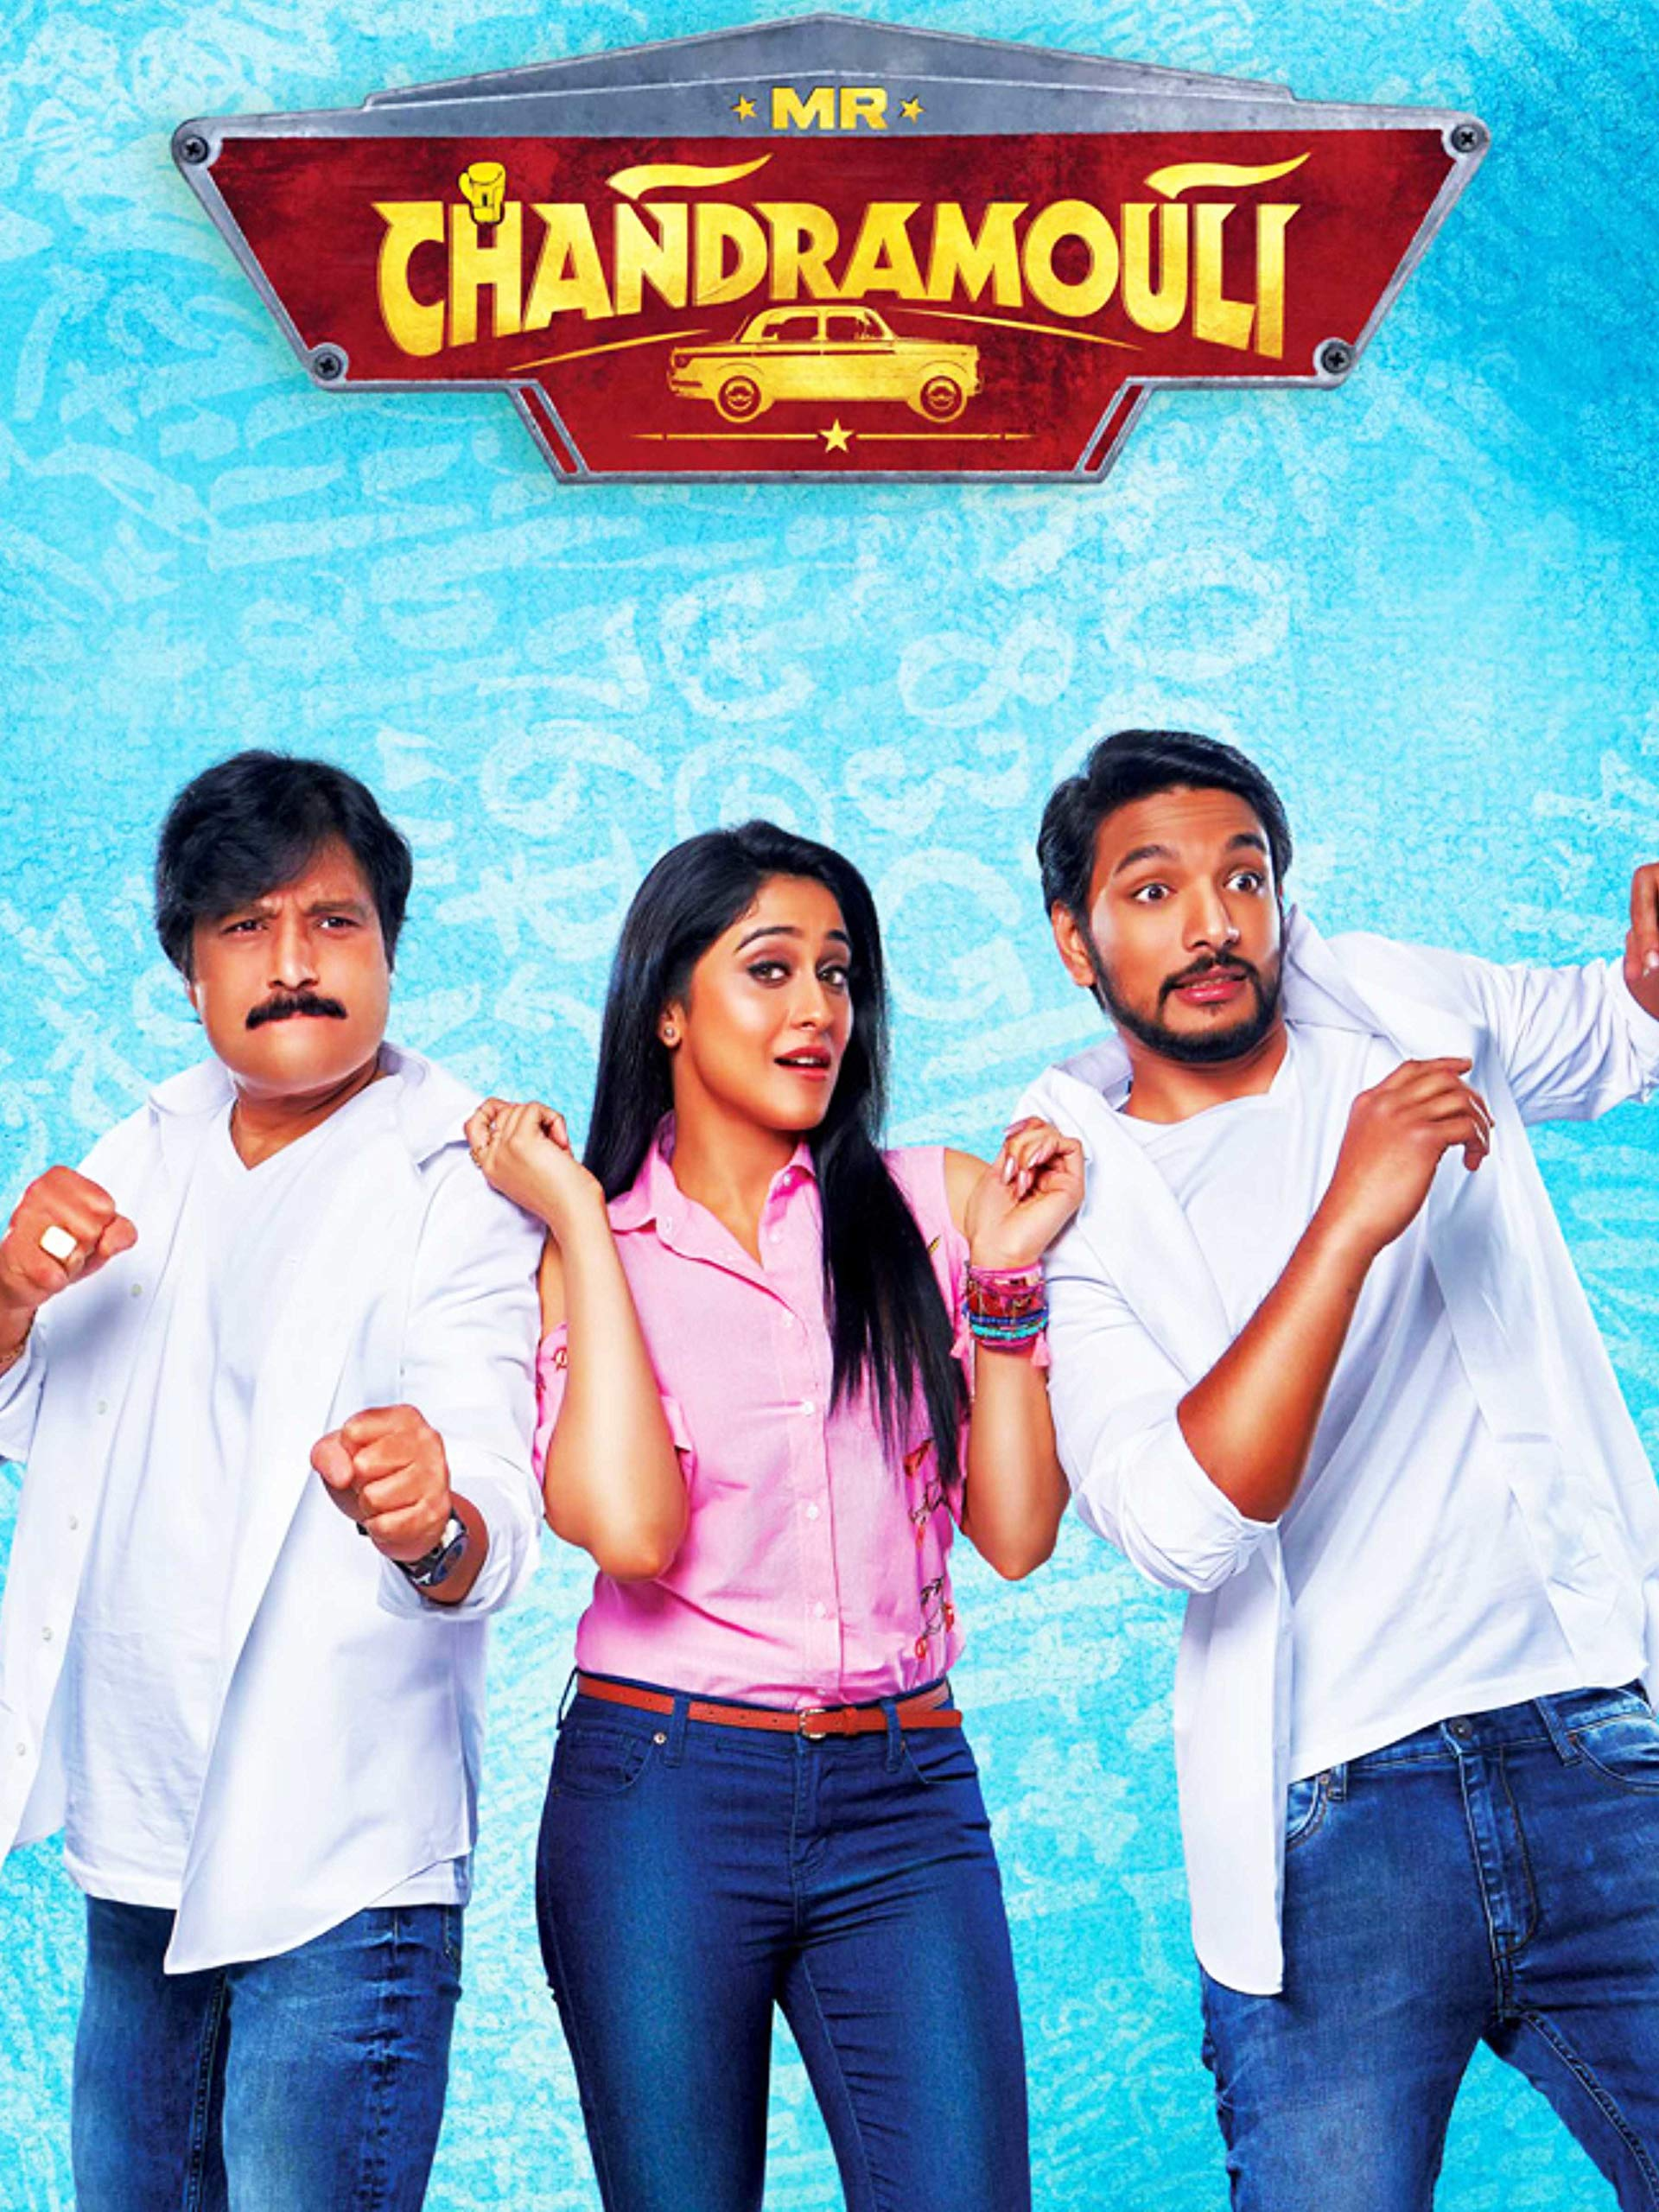 Mr. Chandramouli on Amazon Prime Video UK